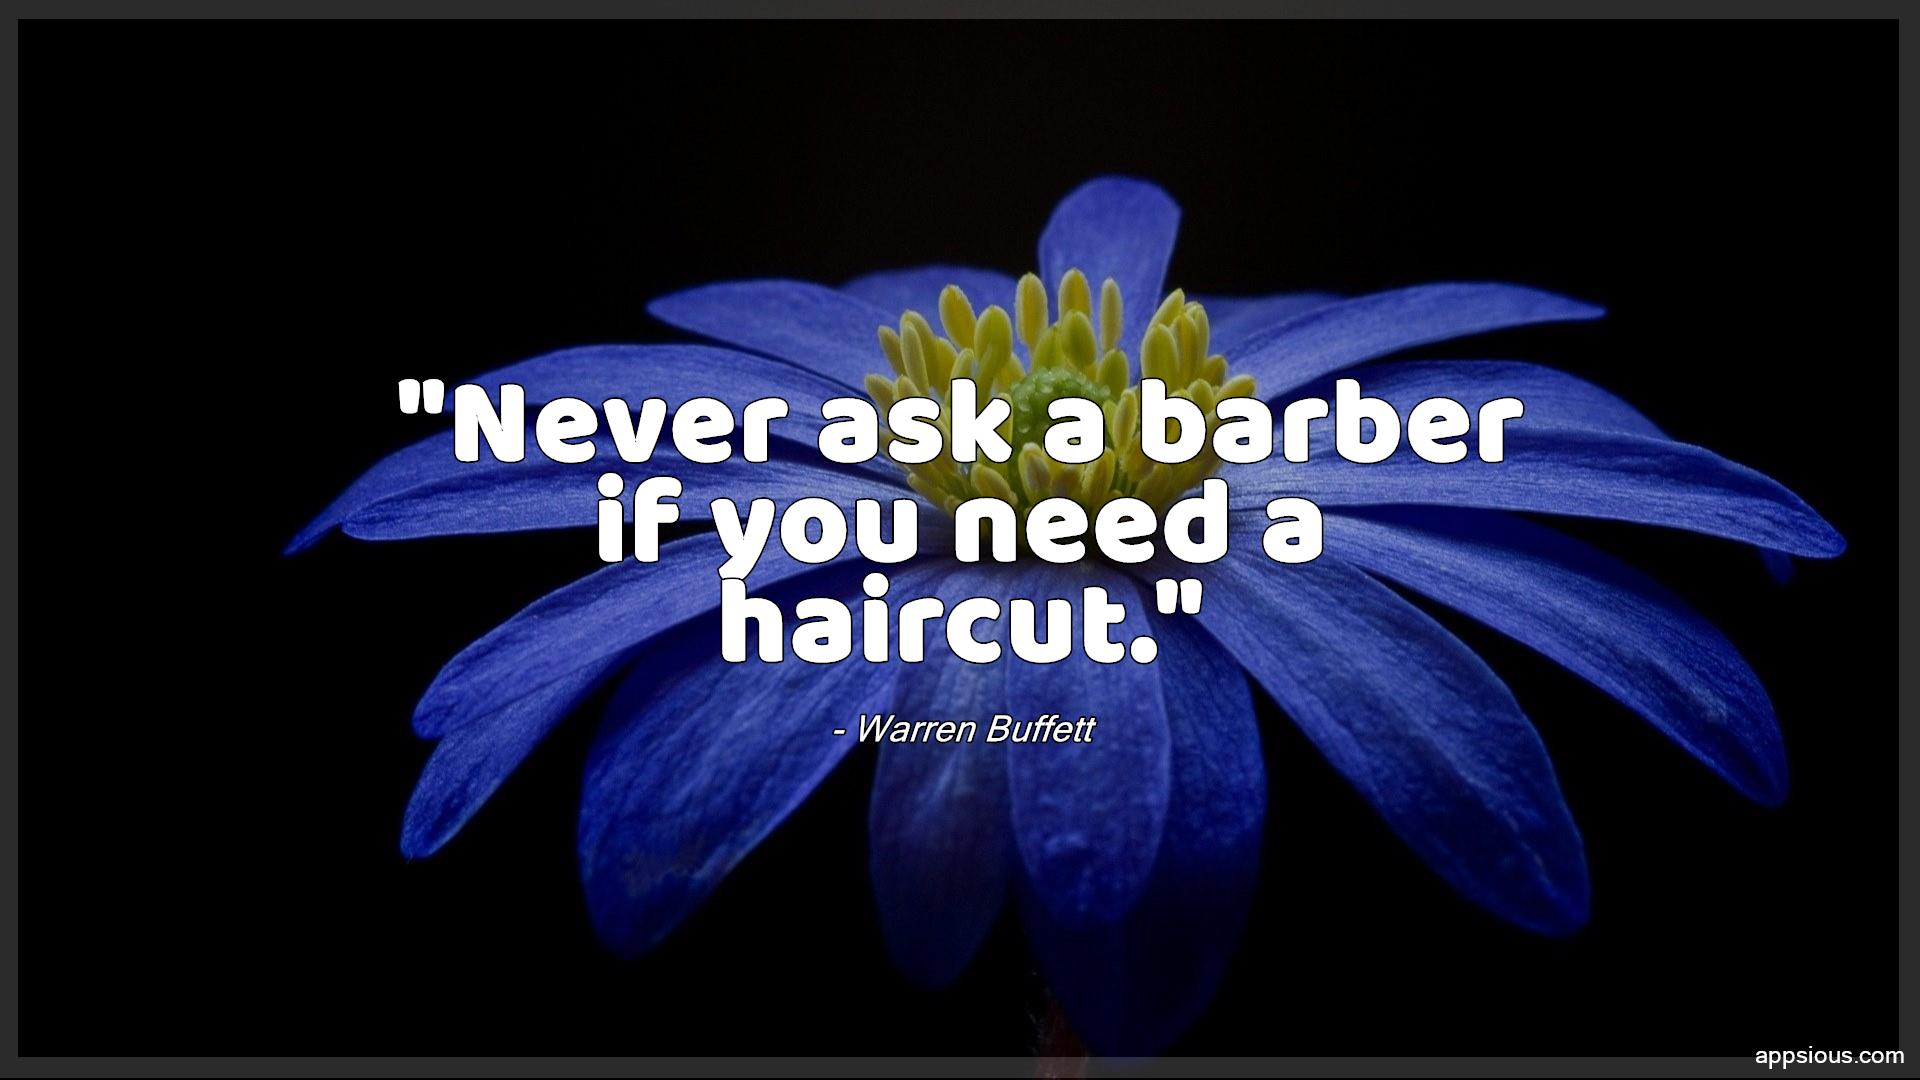 Never ask a barber if you need a haircut.